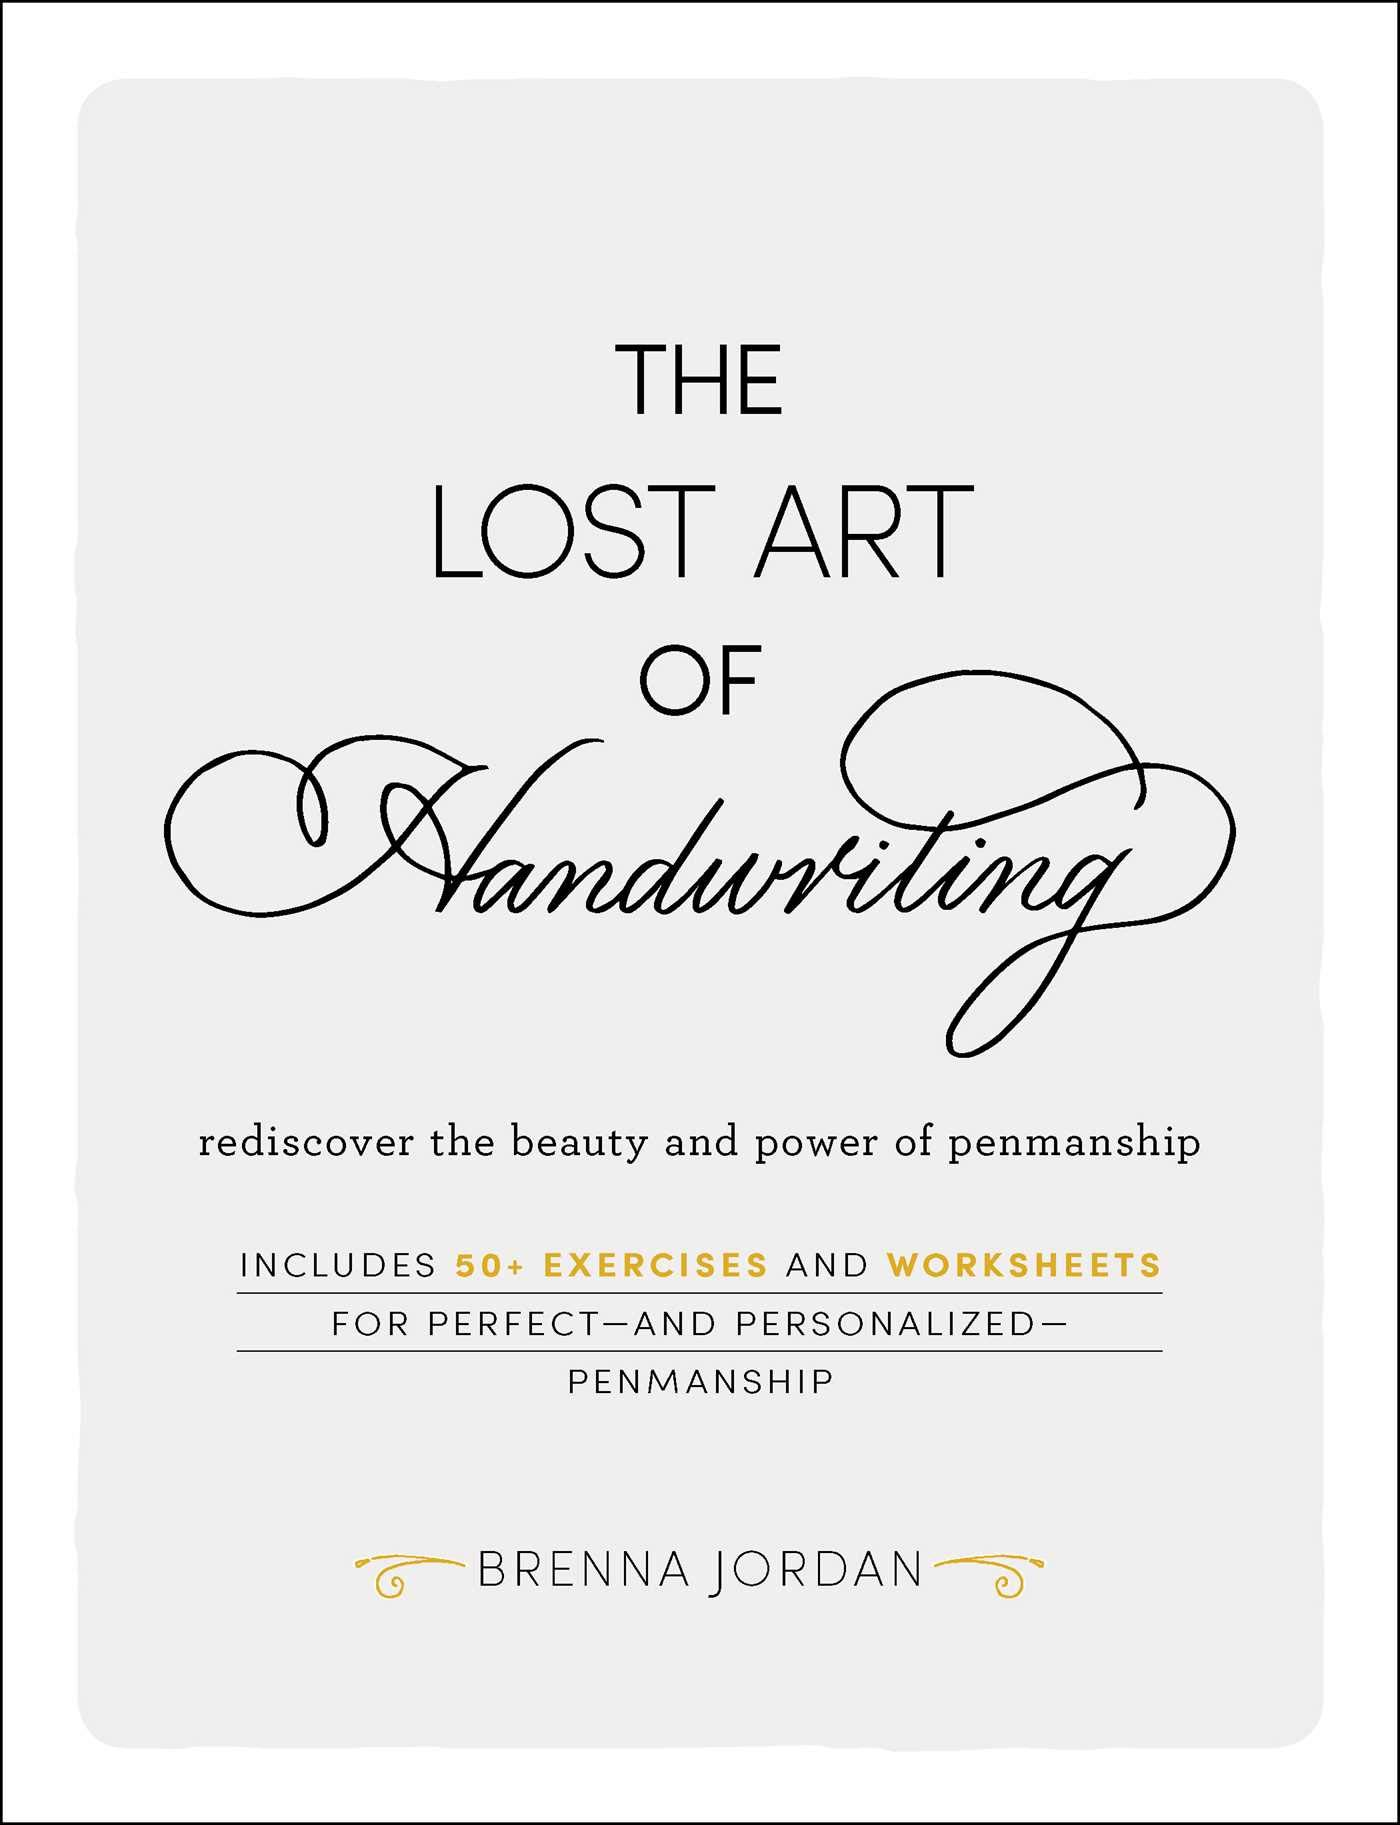 The Lost Art Of Handwriting Rediscover The Beauty And Power Of Penmanship P2p Releaselog